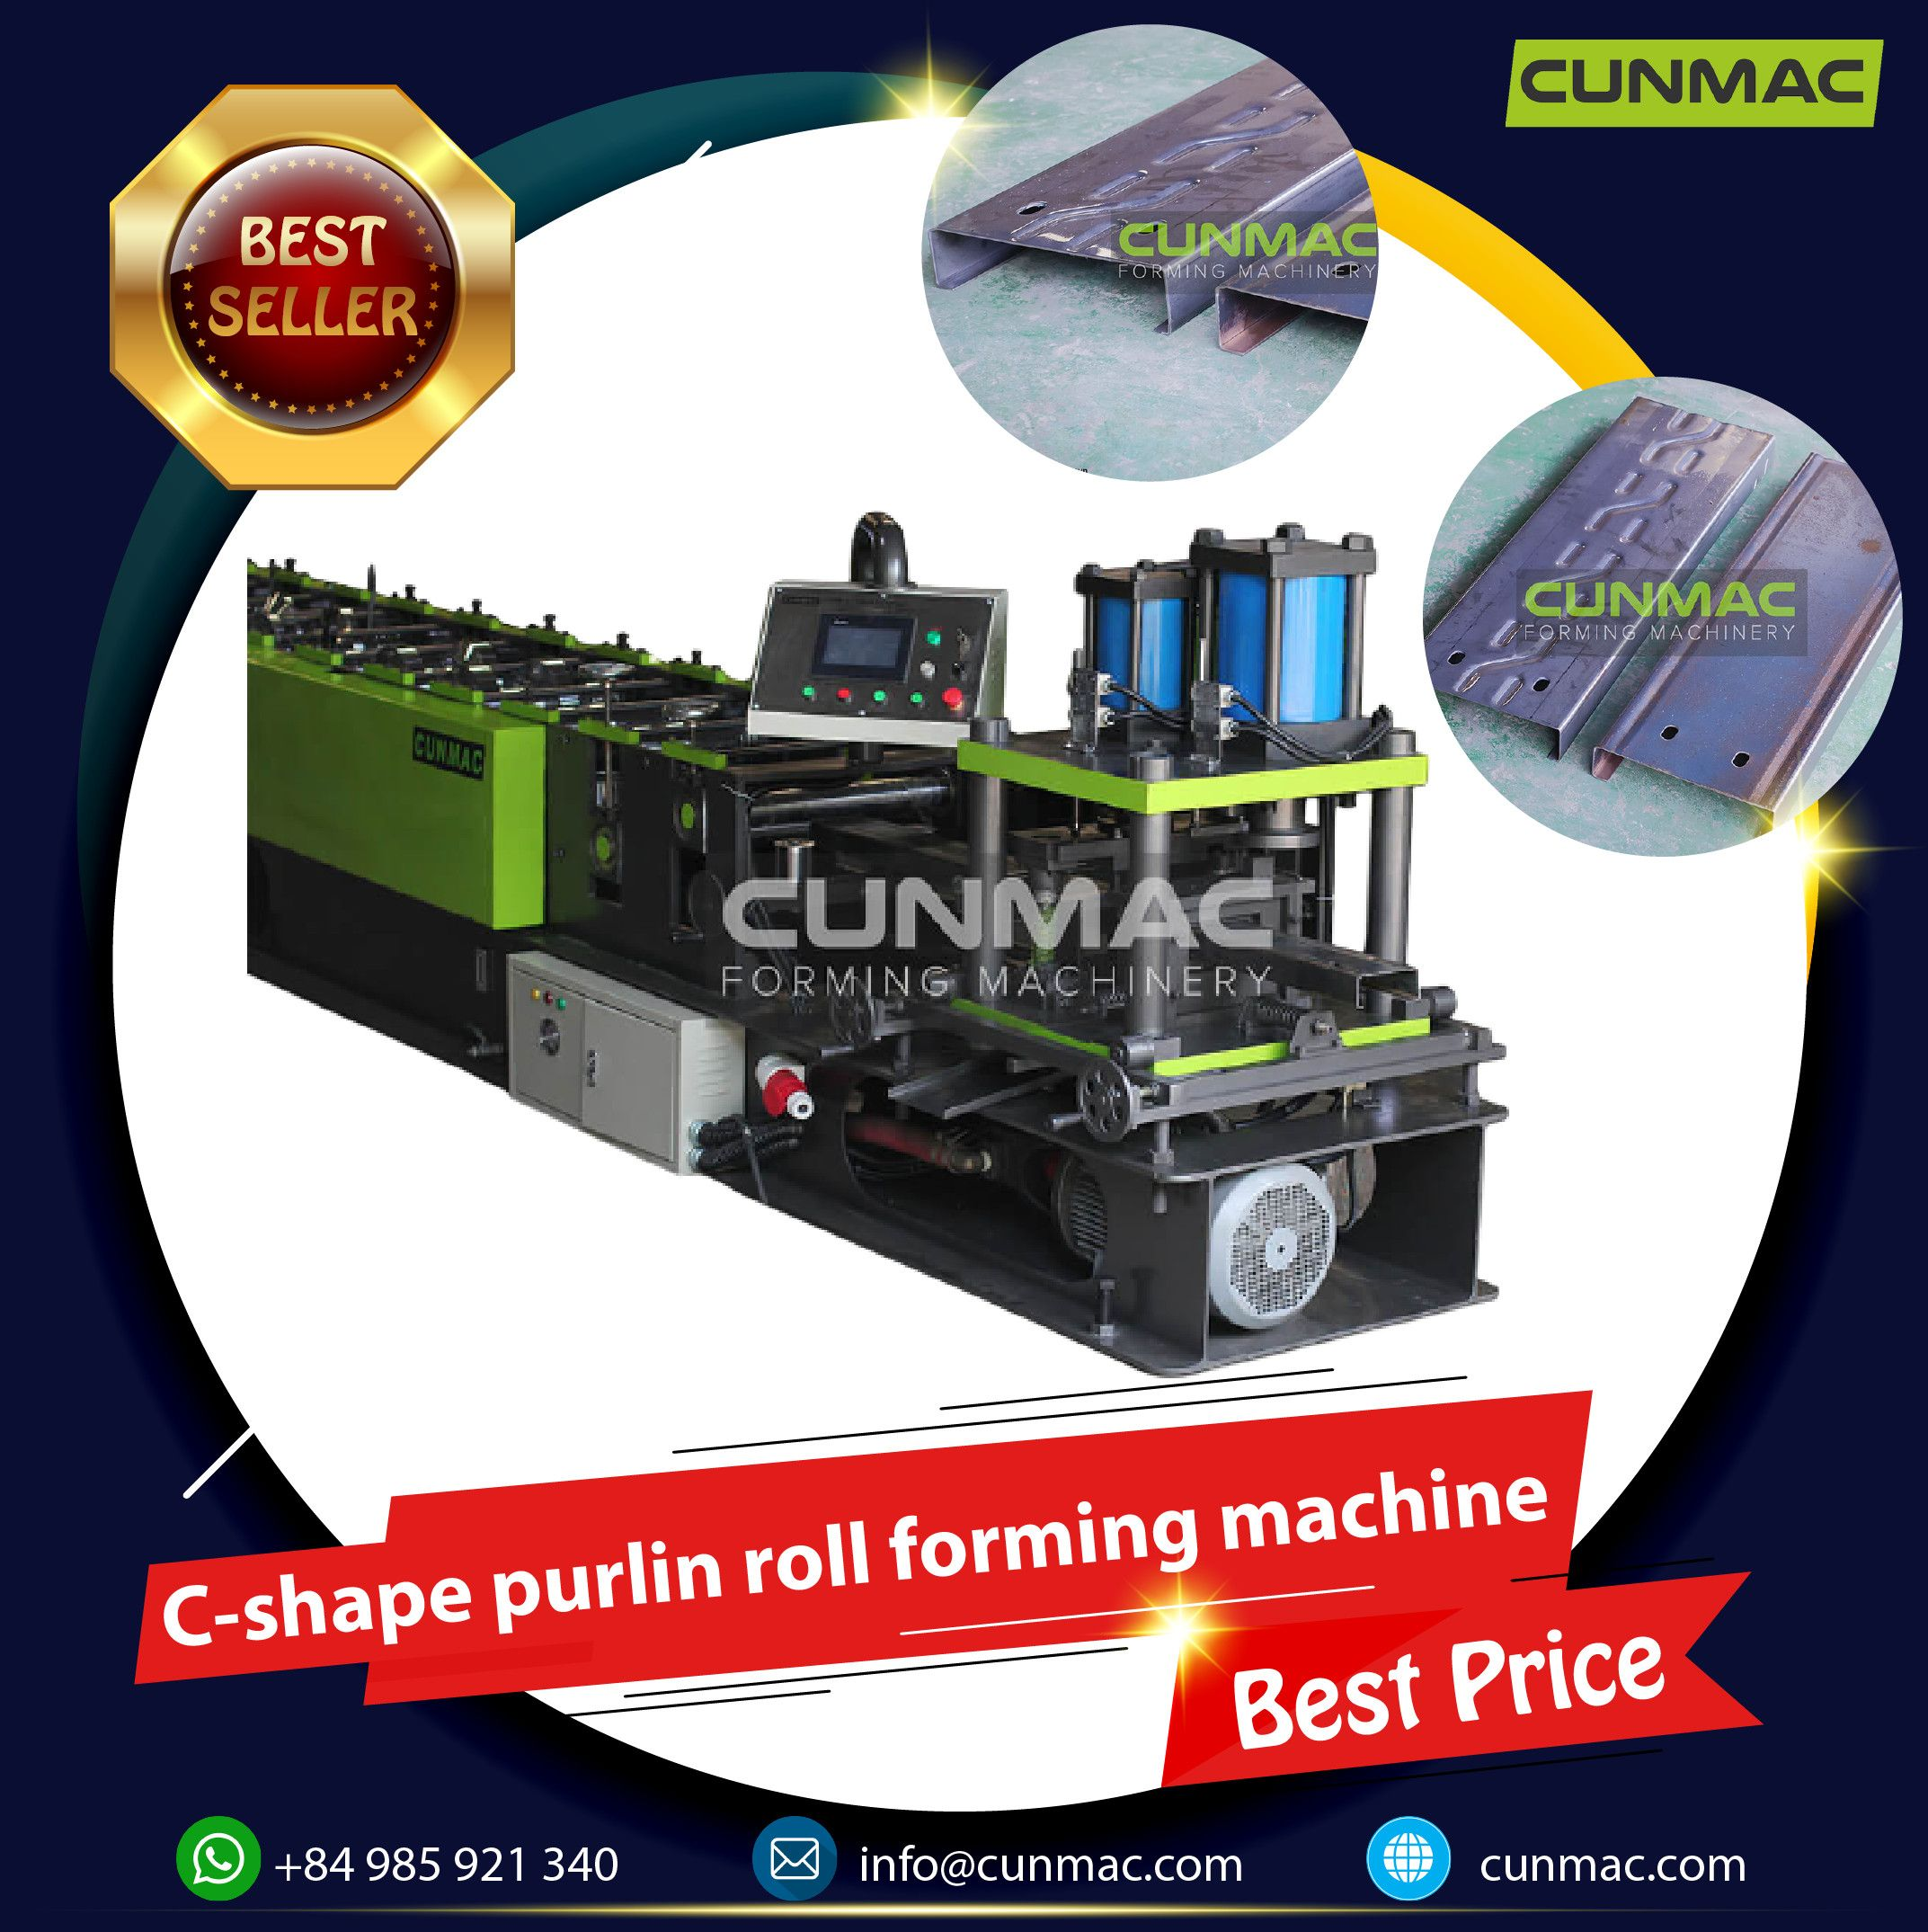 C-shape purlin roll forming machine